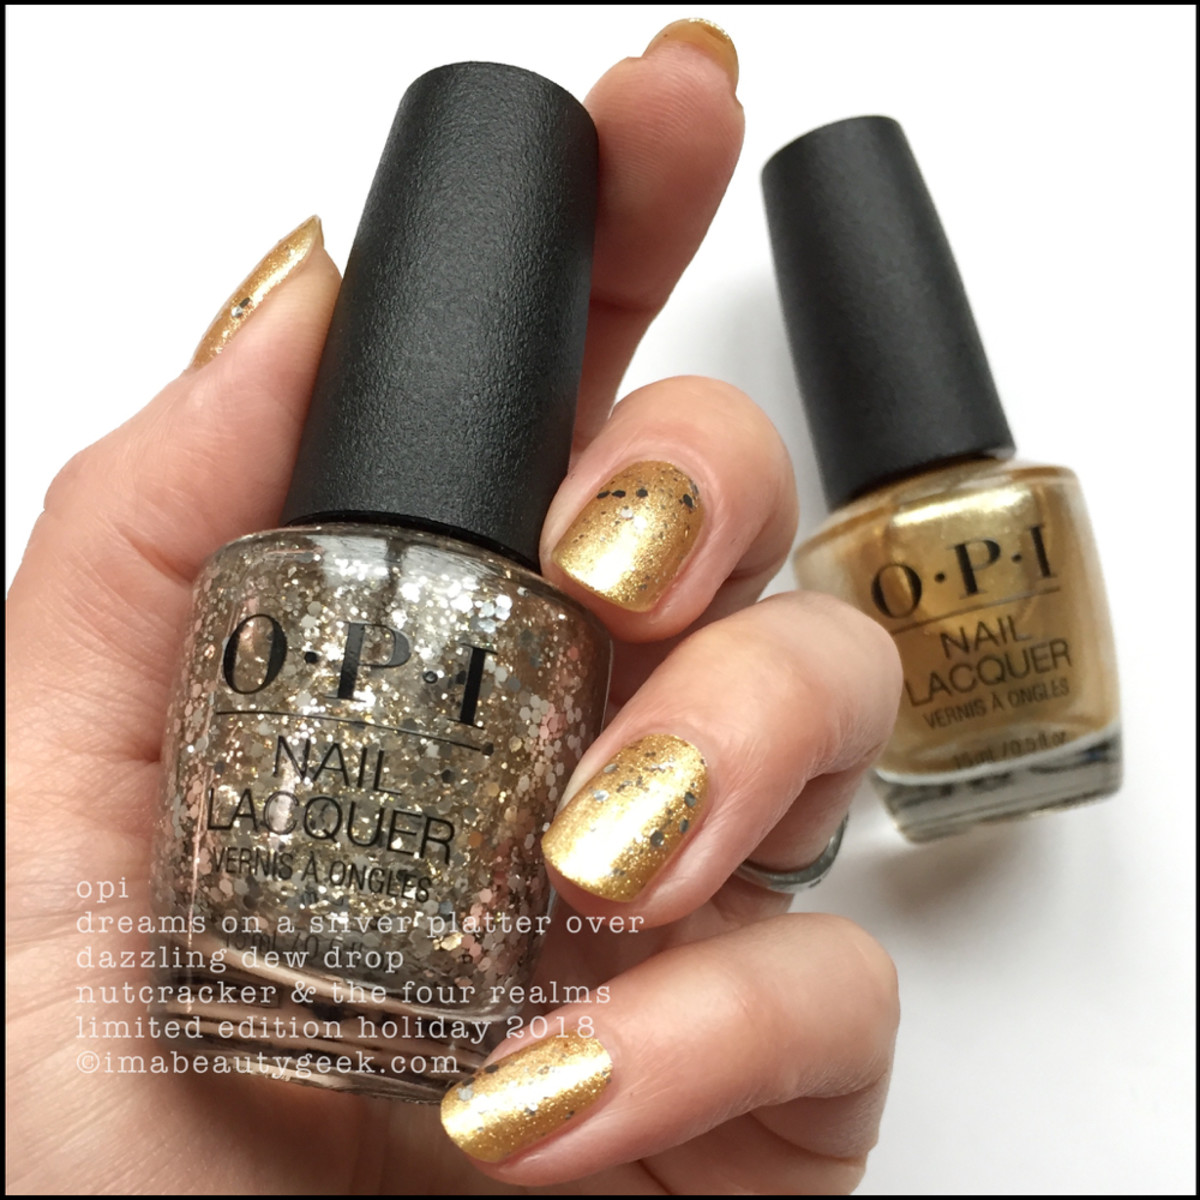 OPI Dreams on a Silver Platter over Dazzling Dew Drop - OPI Nutcracker Holiday 2018